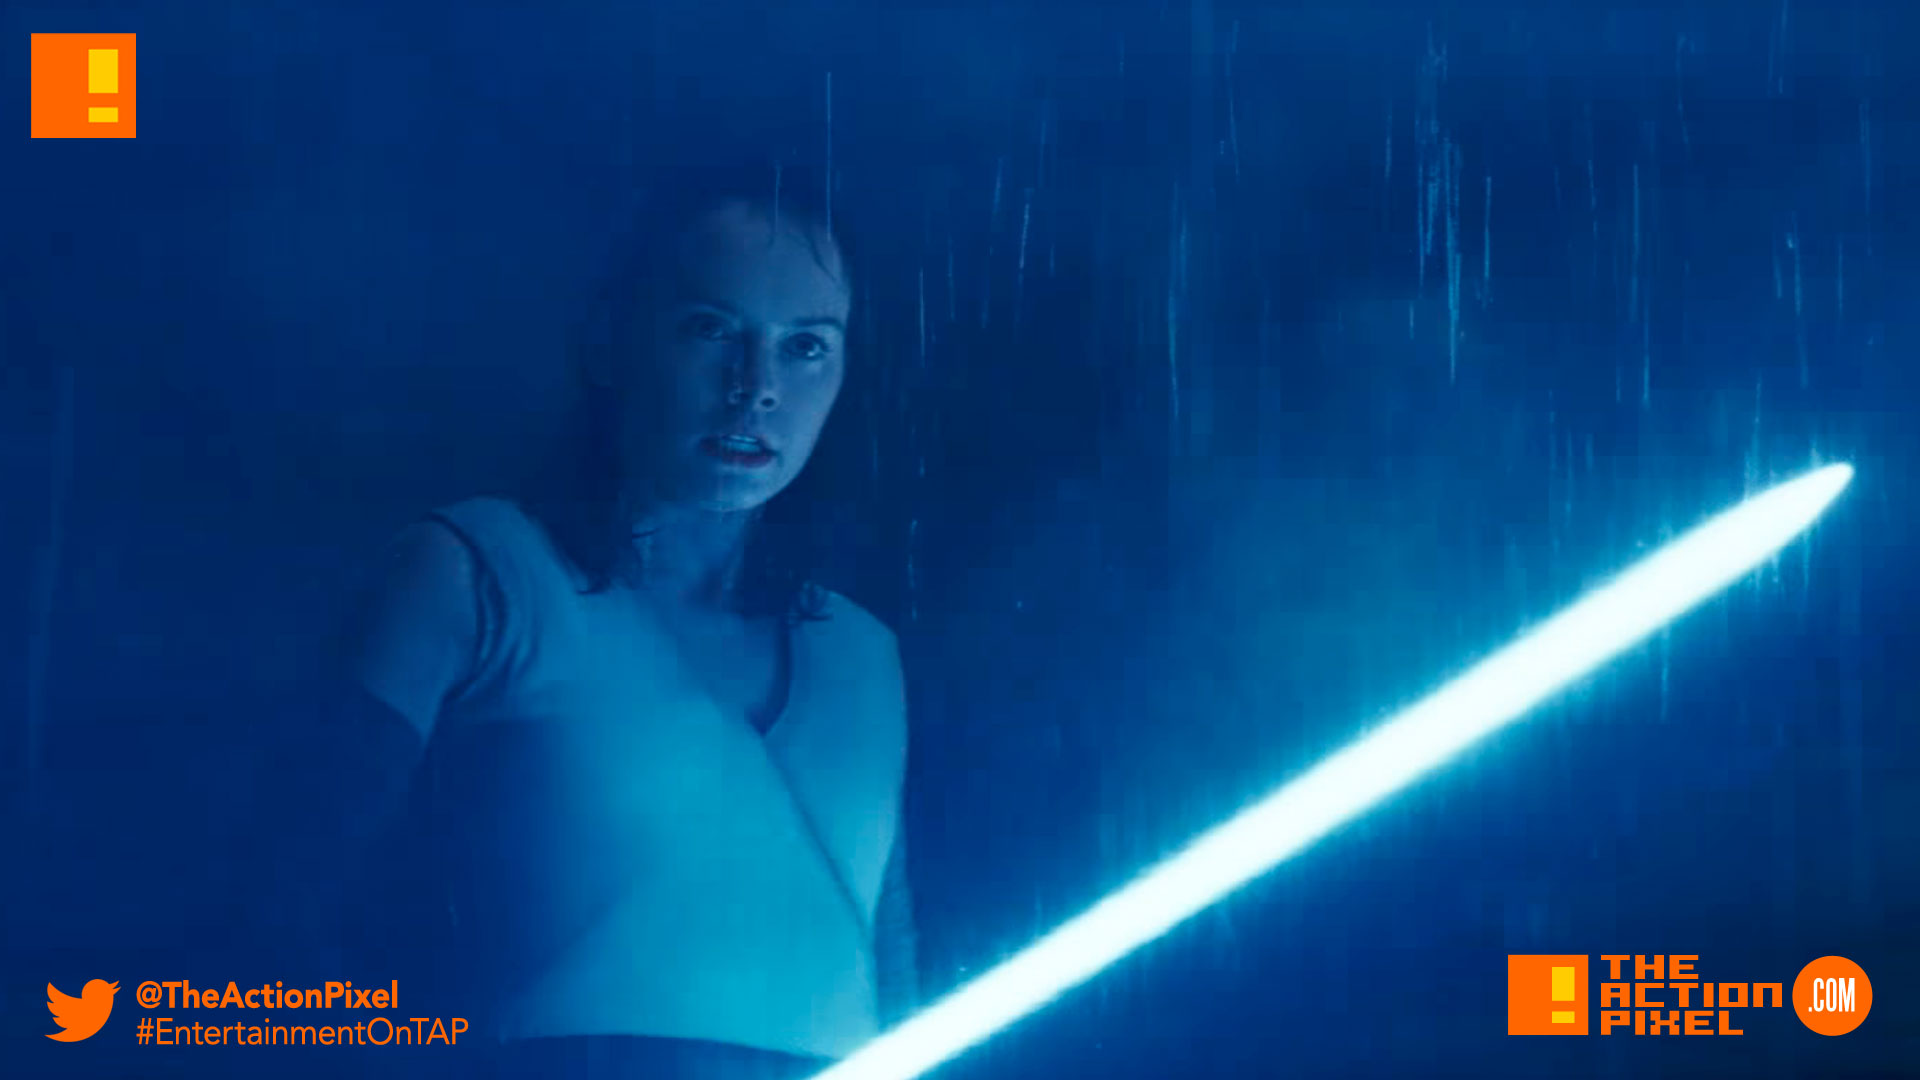 snoke, snoak, the last jedi, star wars, star wars: the last jedi, mark hamill, luke skywalker, princess leia,carrie fisher, rey,the action pixel, entertainment on tap,kylo ren, photographs,image,poster ,awake, trailer,